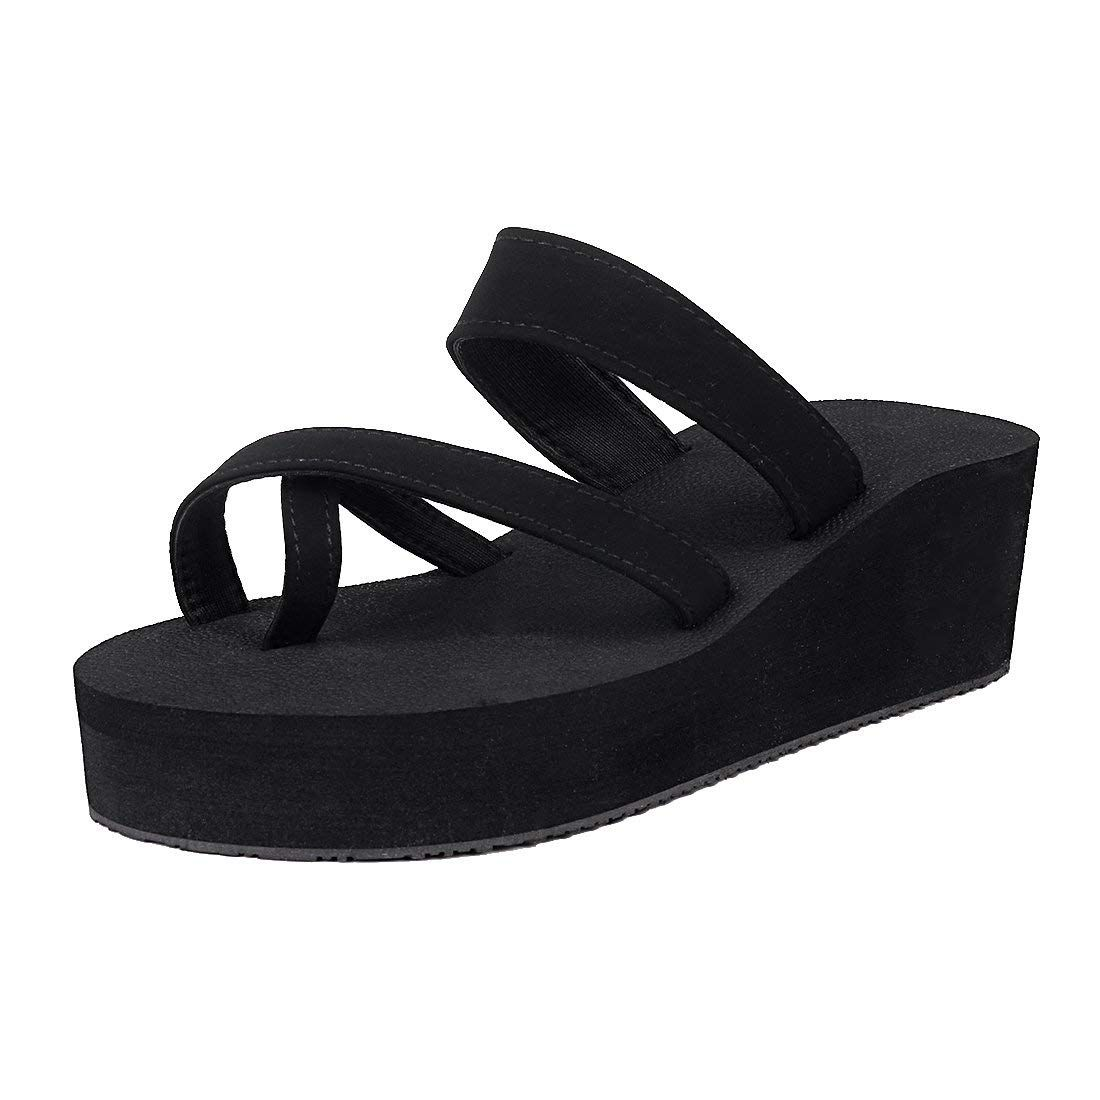 5170e994f3893b Leisurely Pace Black Wedge Flip Flops for Women Girl Rubber Platform Summer Beach  Sandal    Nice of your presence to drop by to see our picture.